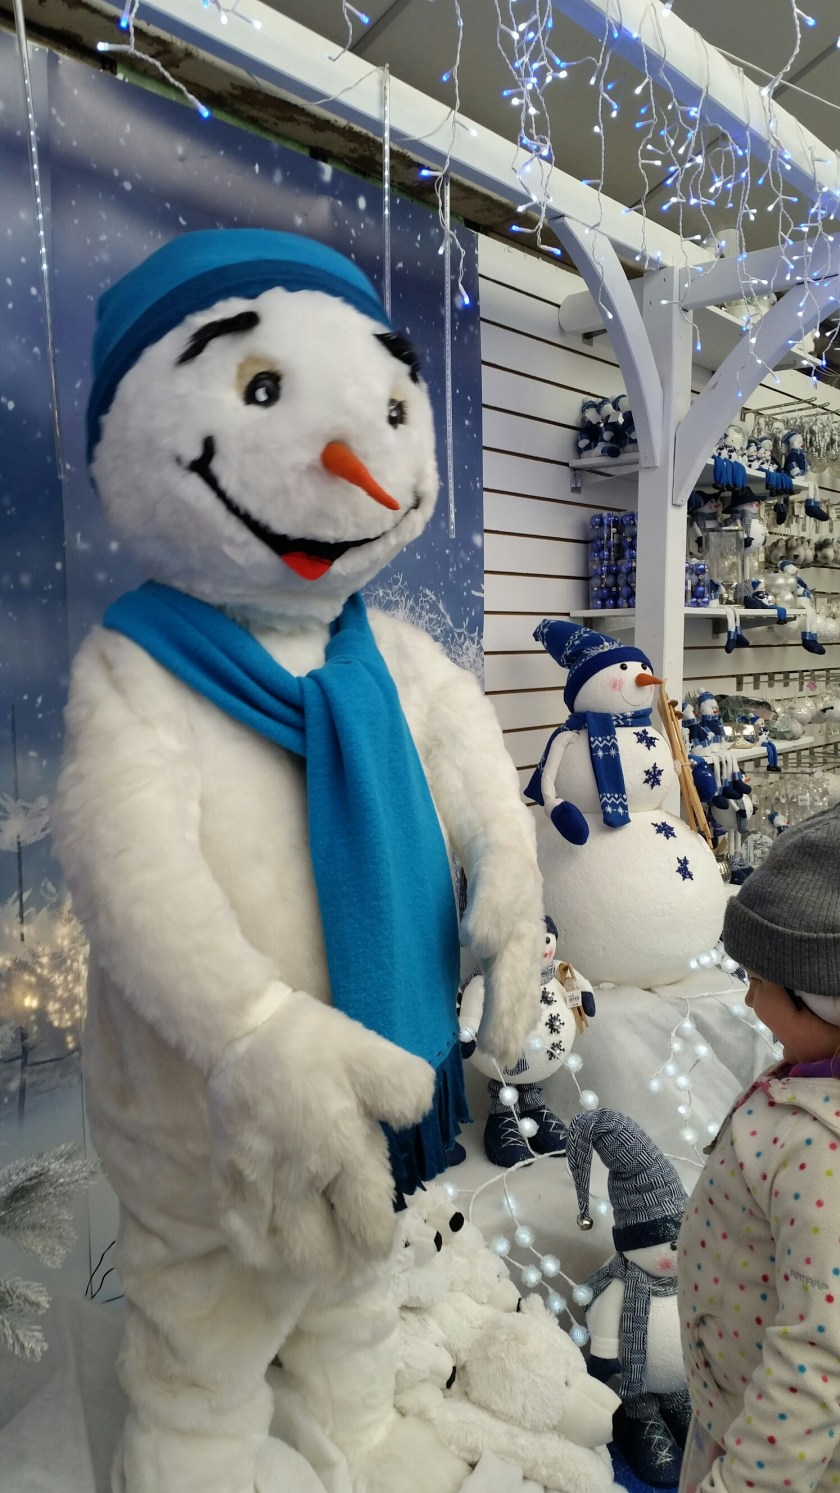 Notcutts, St Albans, Hertfordshire, Christmas, Santas Grotto, snowman